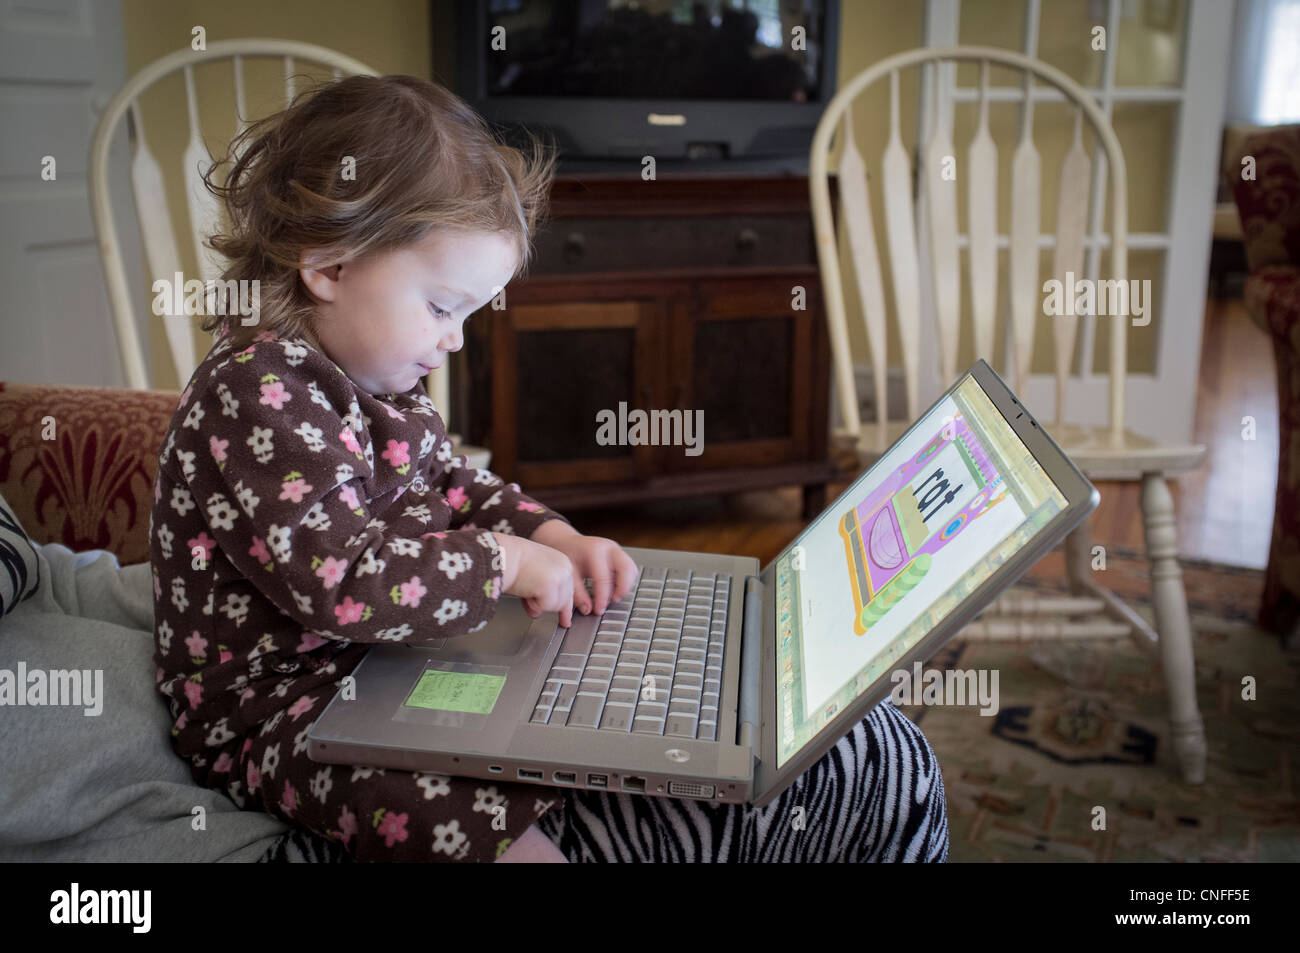 Baby learning on a computer - Stock Image